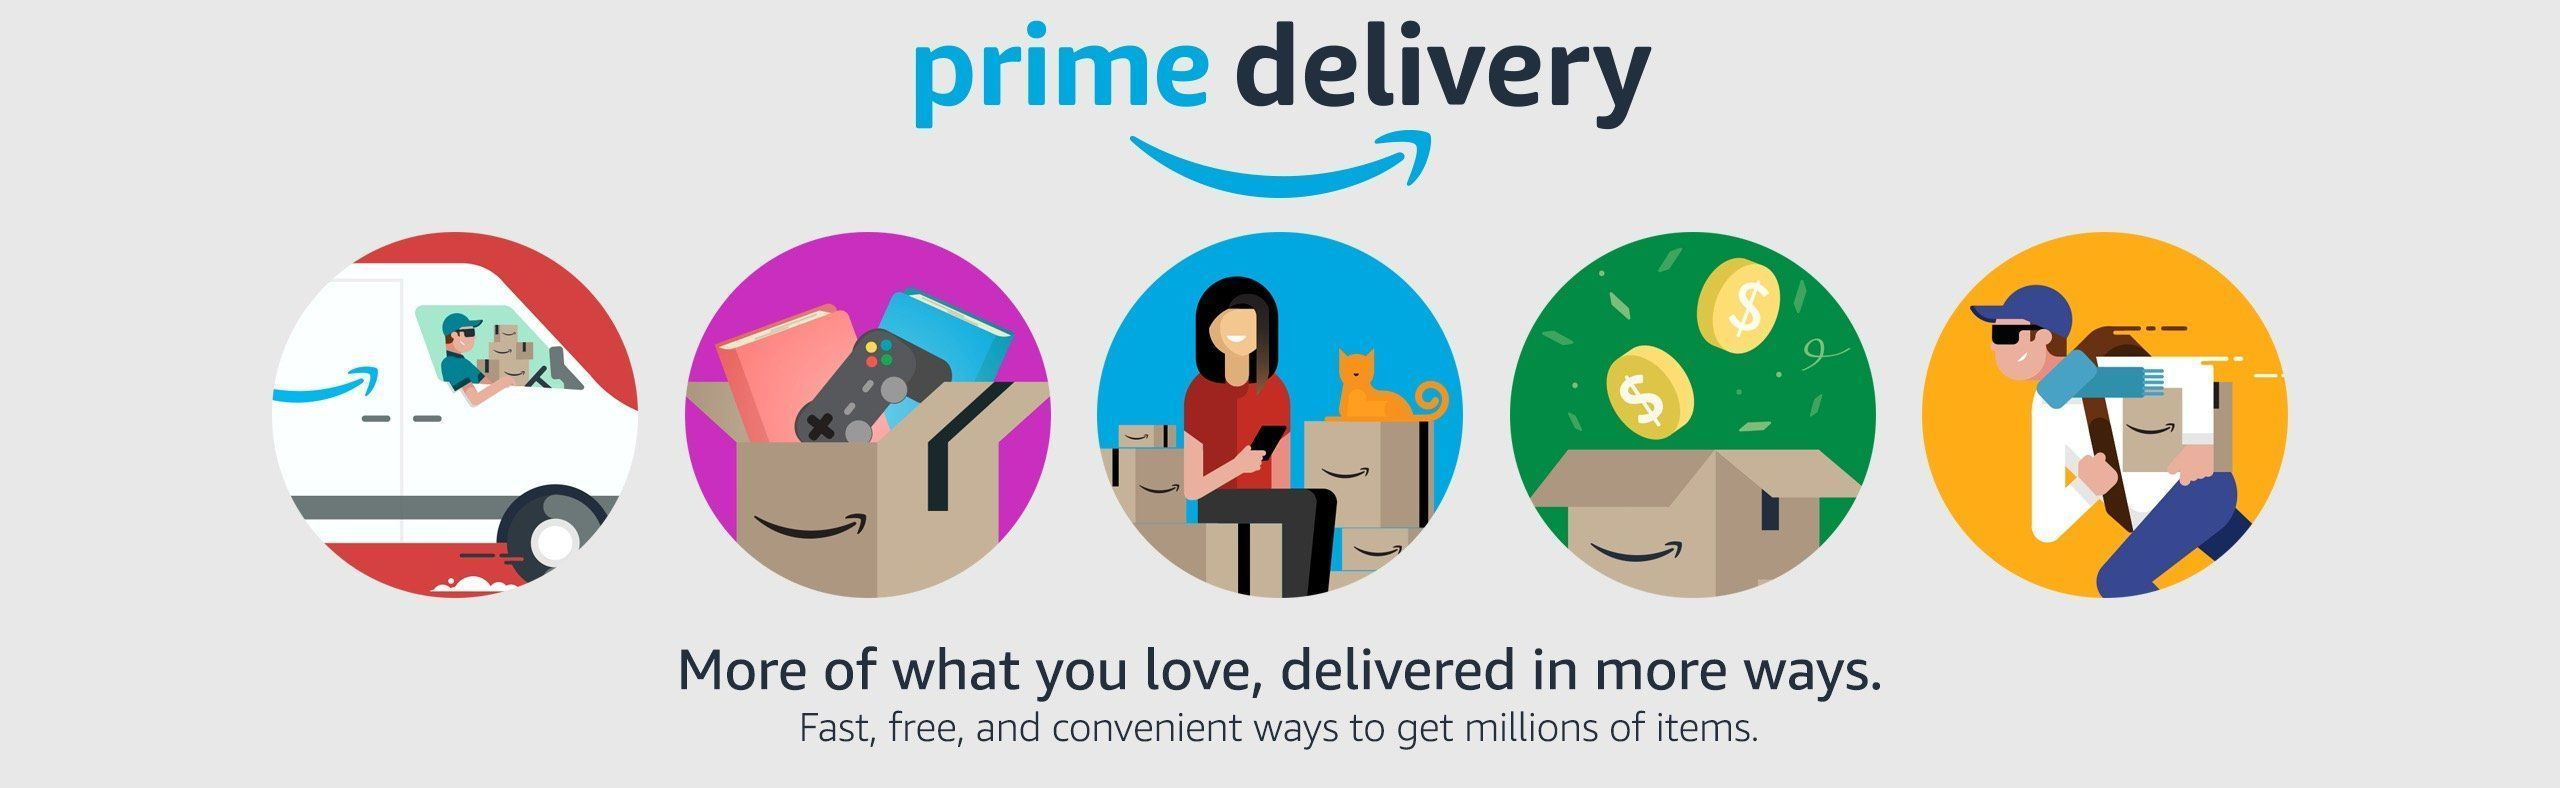 Prime Delivery Fast Free And Convenient Delivery Choices On Millions Of It Https Www Amazon Com Amazon Prime Day Deals Amazon Prime Day Prime Delivery